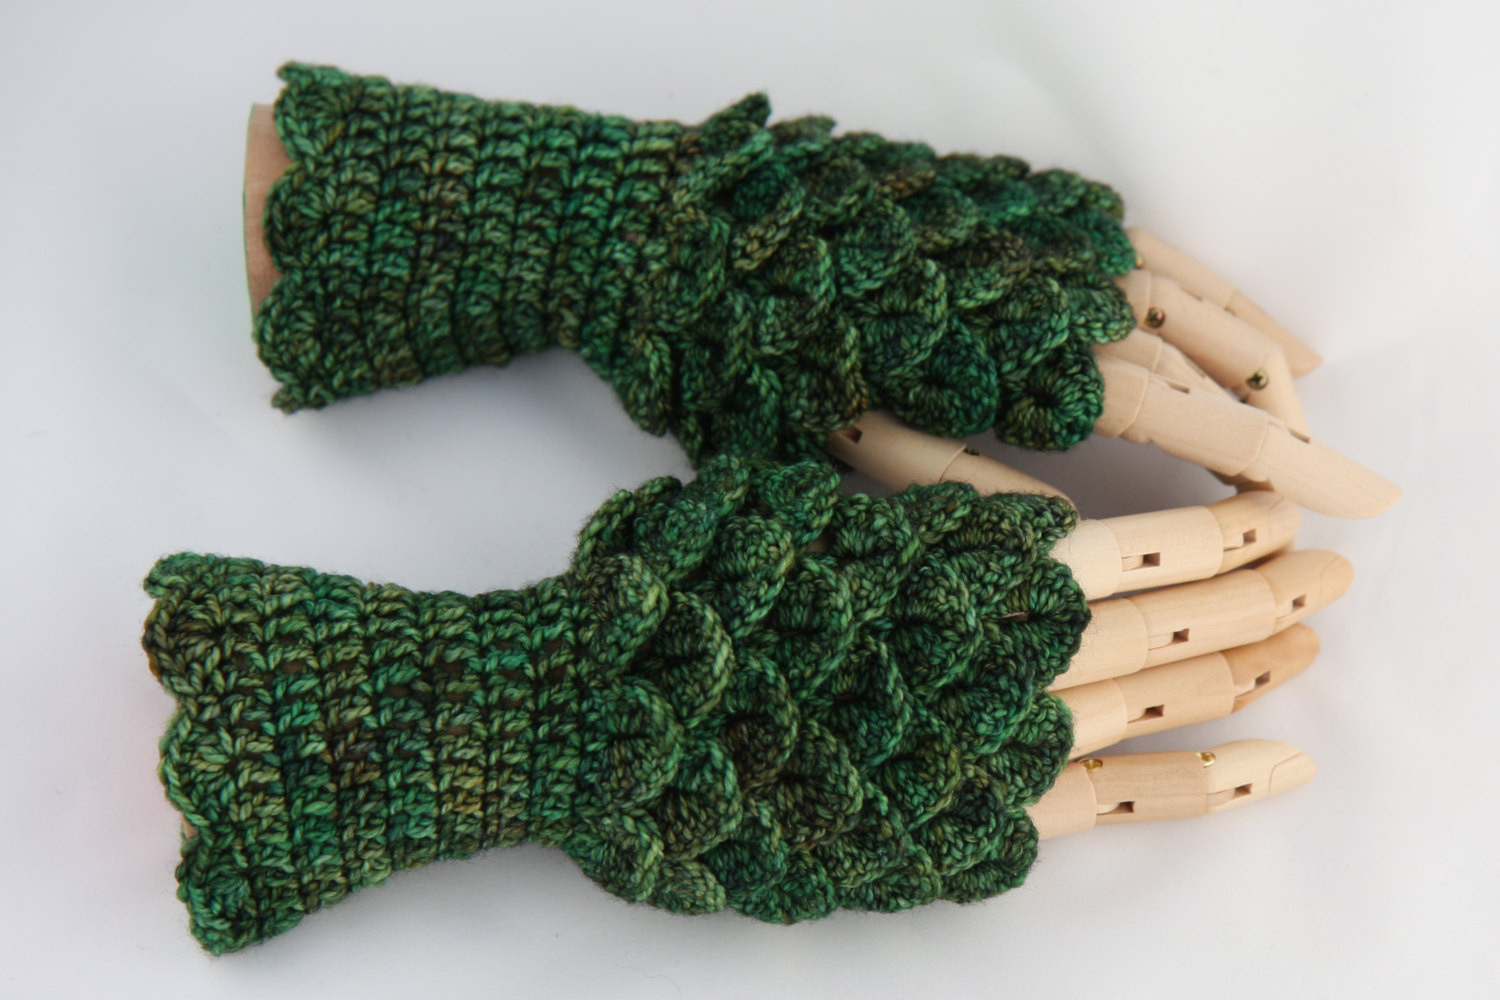 Dragon Scale Crochet Gloves Fresh Crochet Dragonscale Fingerless Gloves Woodland by Of Dragon Scale Crochet Gloves New Dragon Gloves Dragon Scale Fingerless Gloves Long Crochet